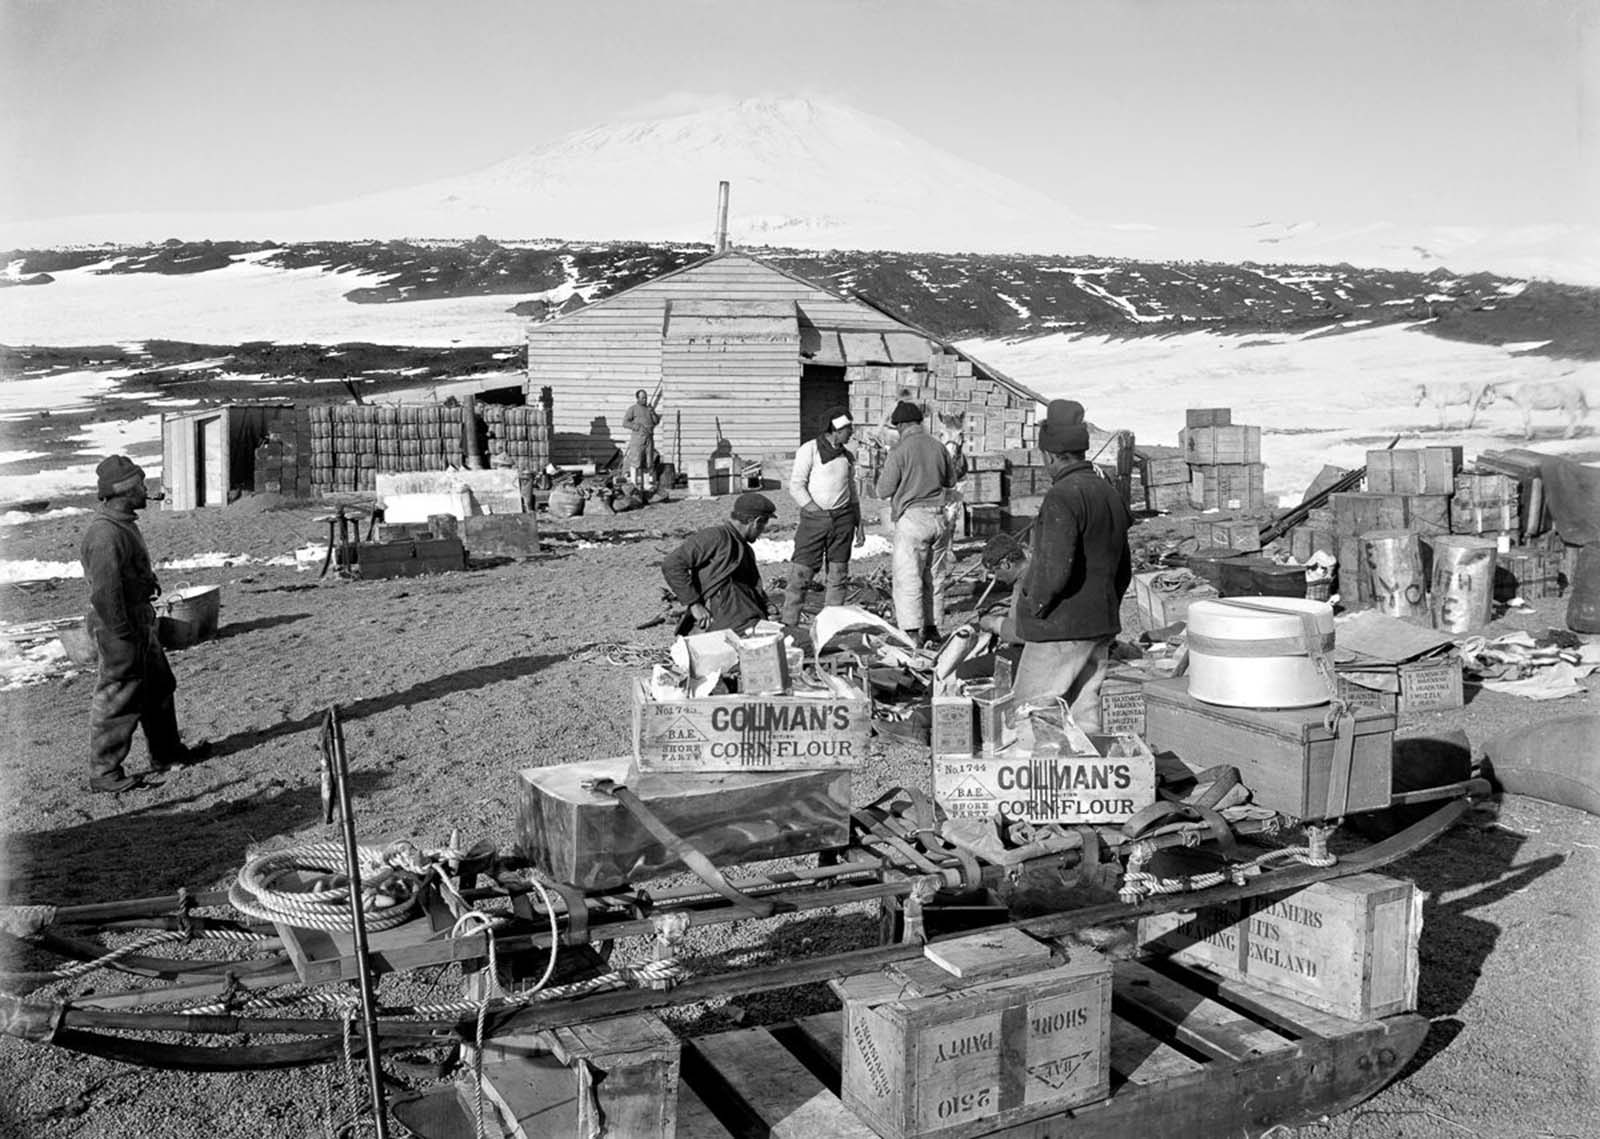 Men arrange supplies at the camp on Cape Evans, with active volcano Mt. Erebus in the background. Jan. 23, 1911.